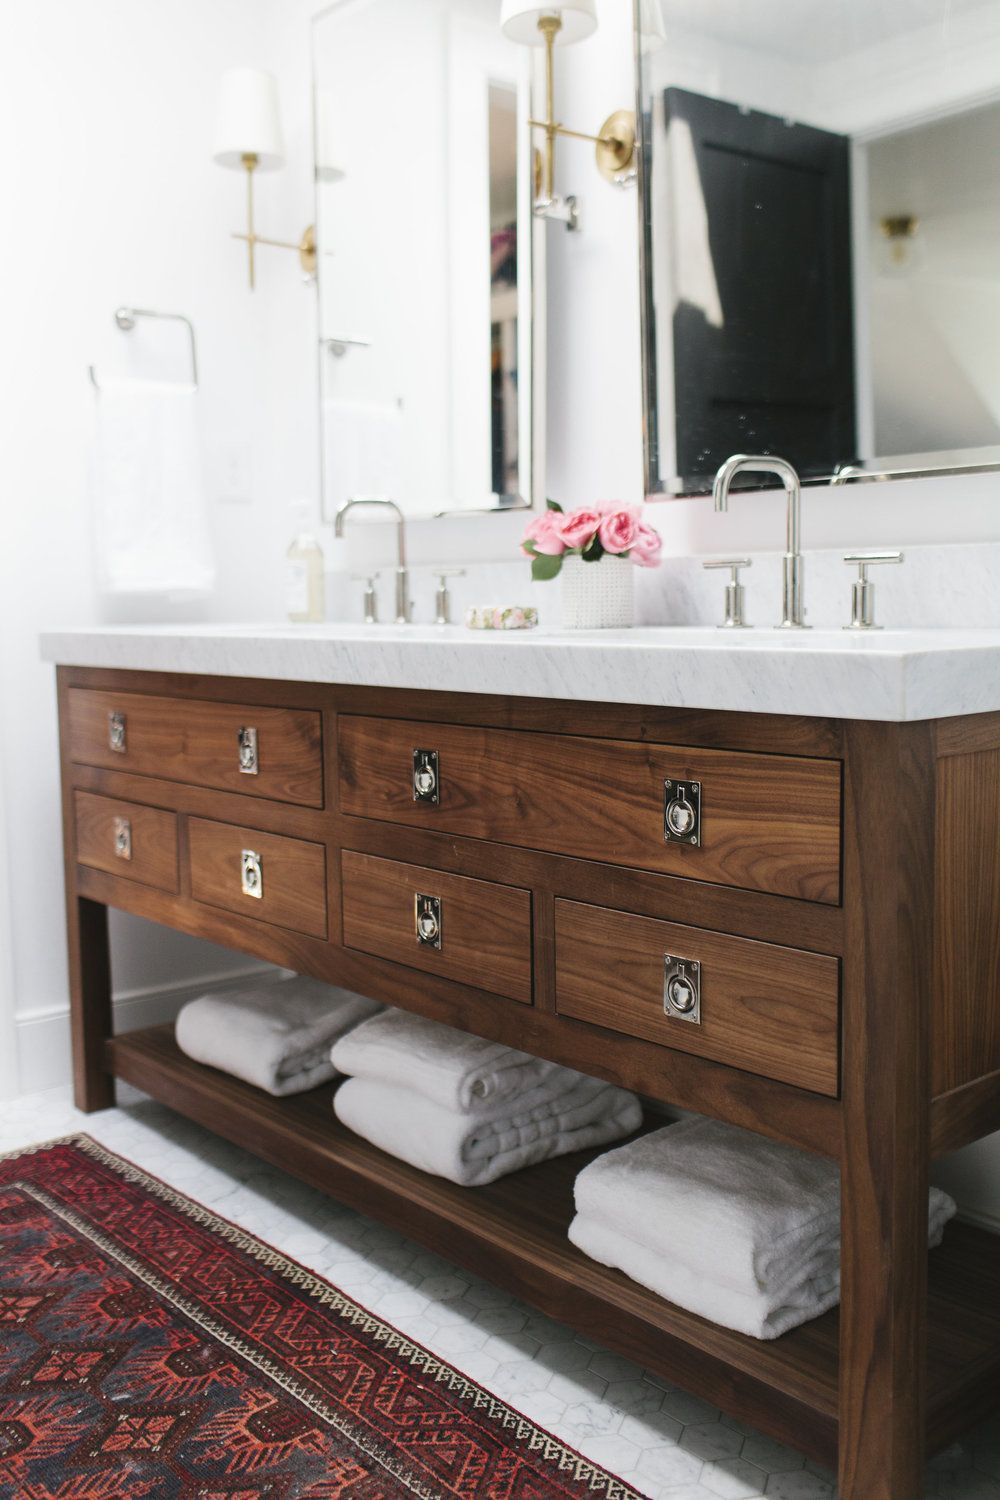 Silver hardware roundup wood vanity nature and double sinks for Bathroom vanities uk